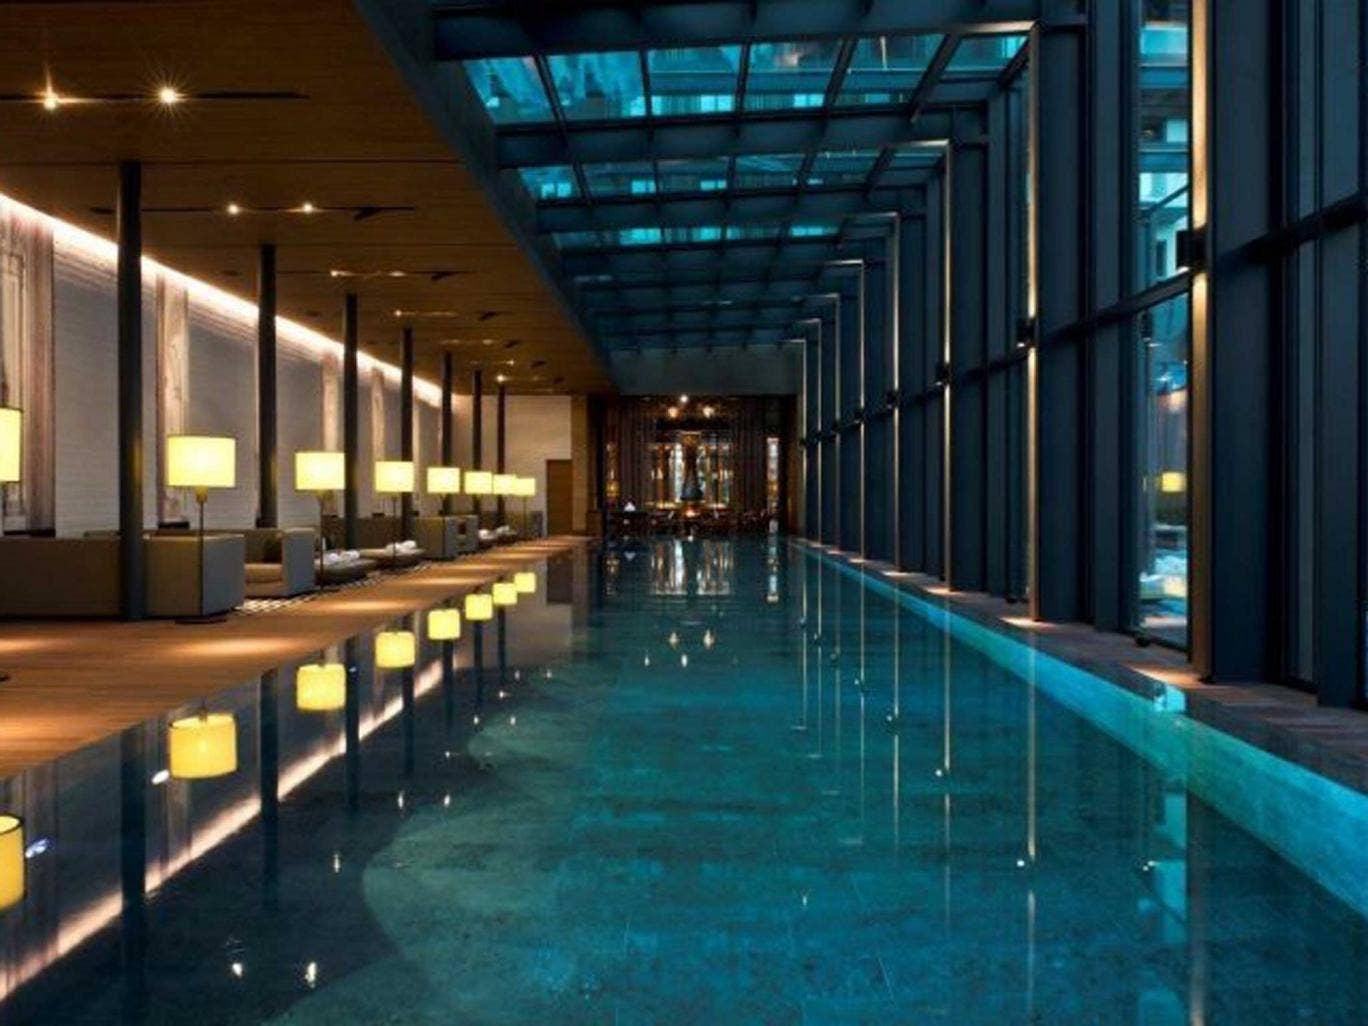 The swimming pool at the Chedi